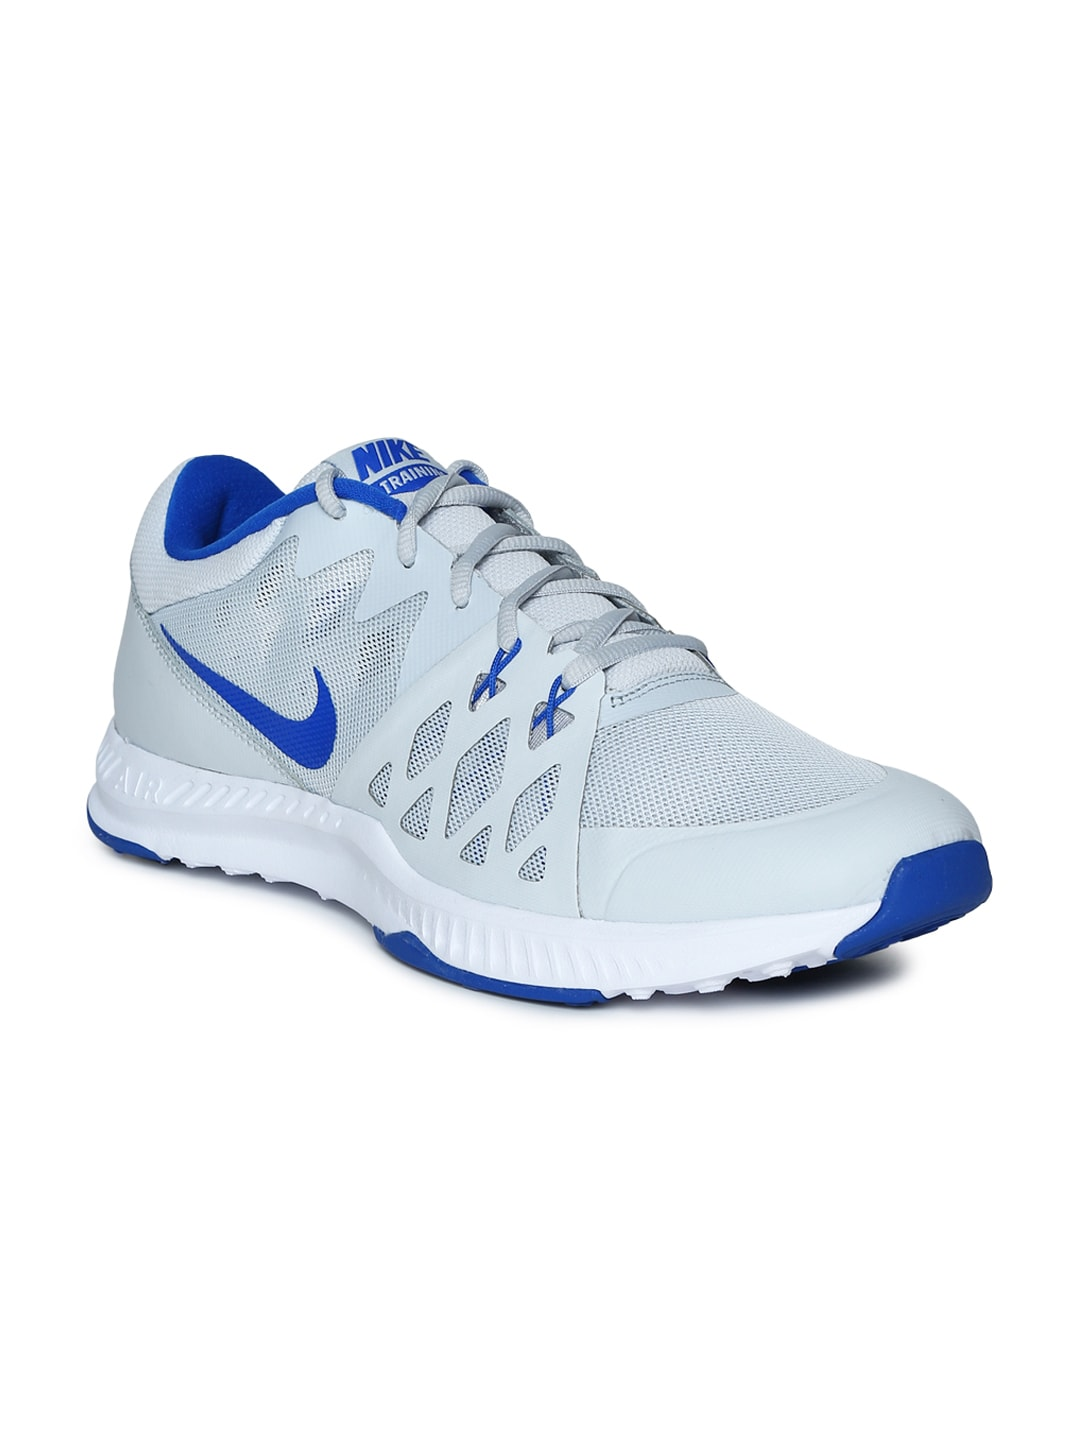 Shoe Nike At OnlineMyntra Shoes Best Price Buy Sport OPZiuXk